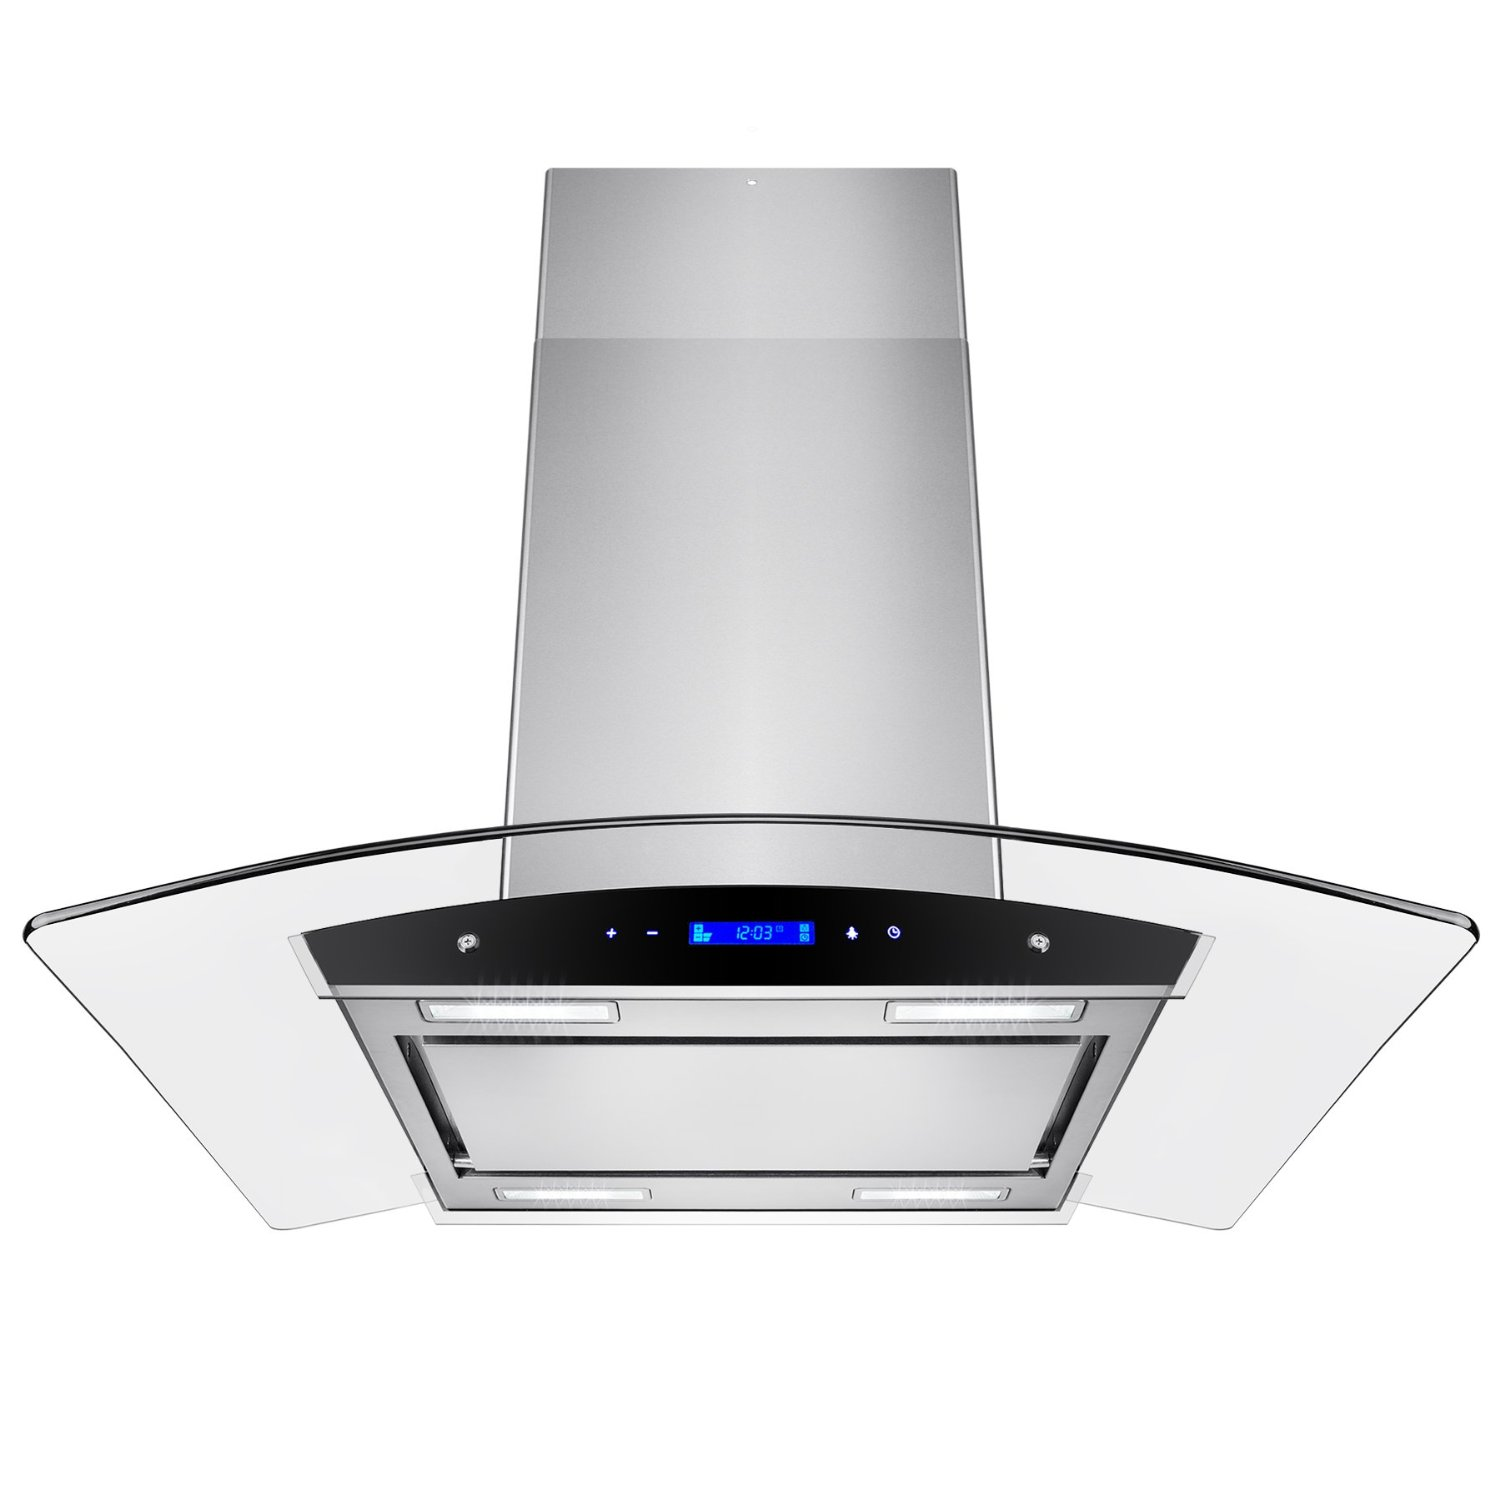 REVEALED: 5 Best Range Hoods That Are Dependable